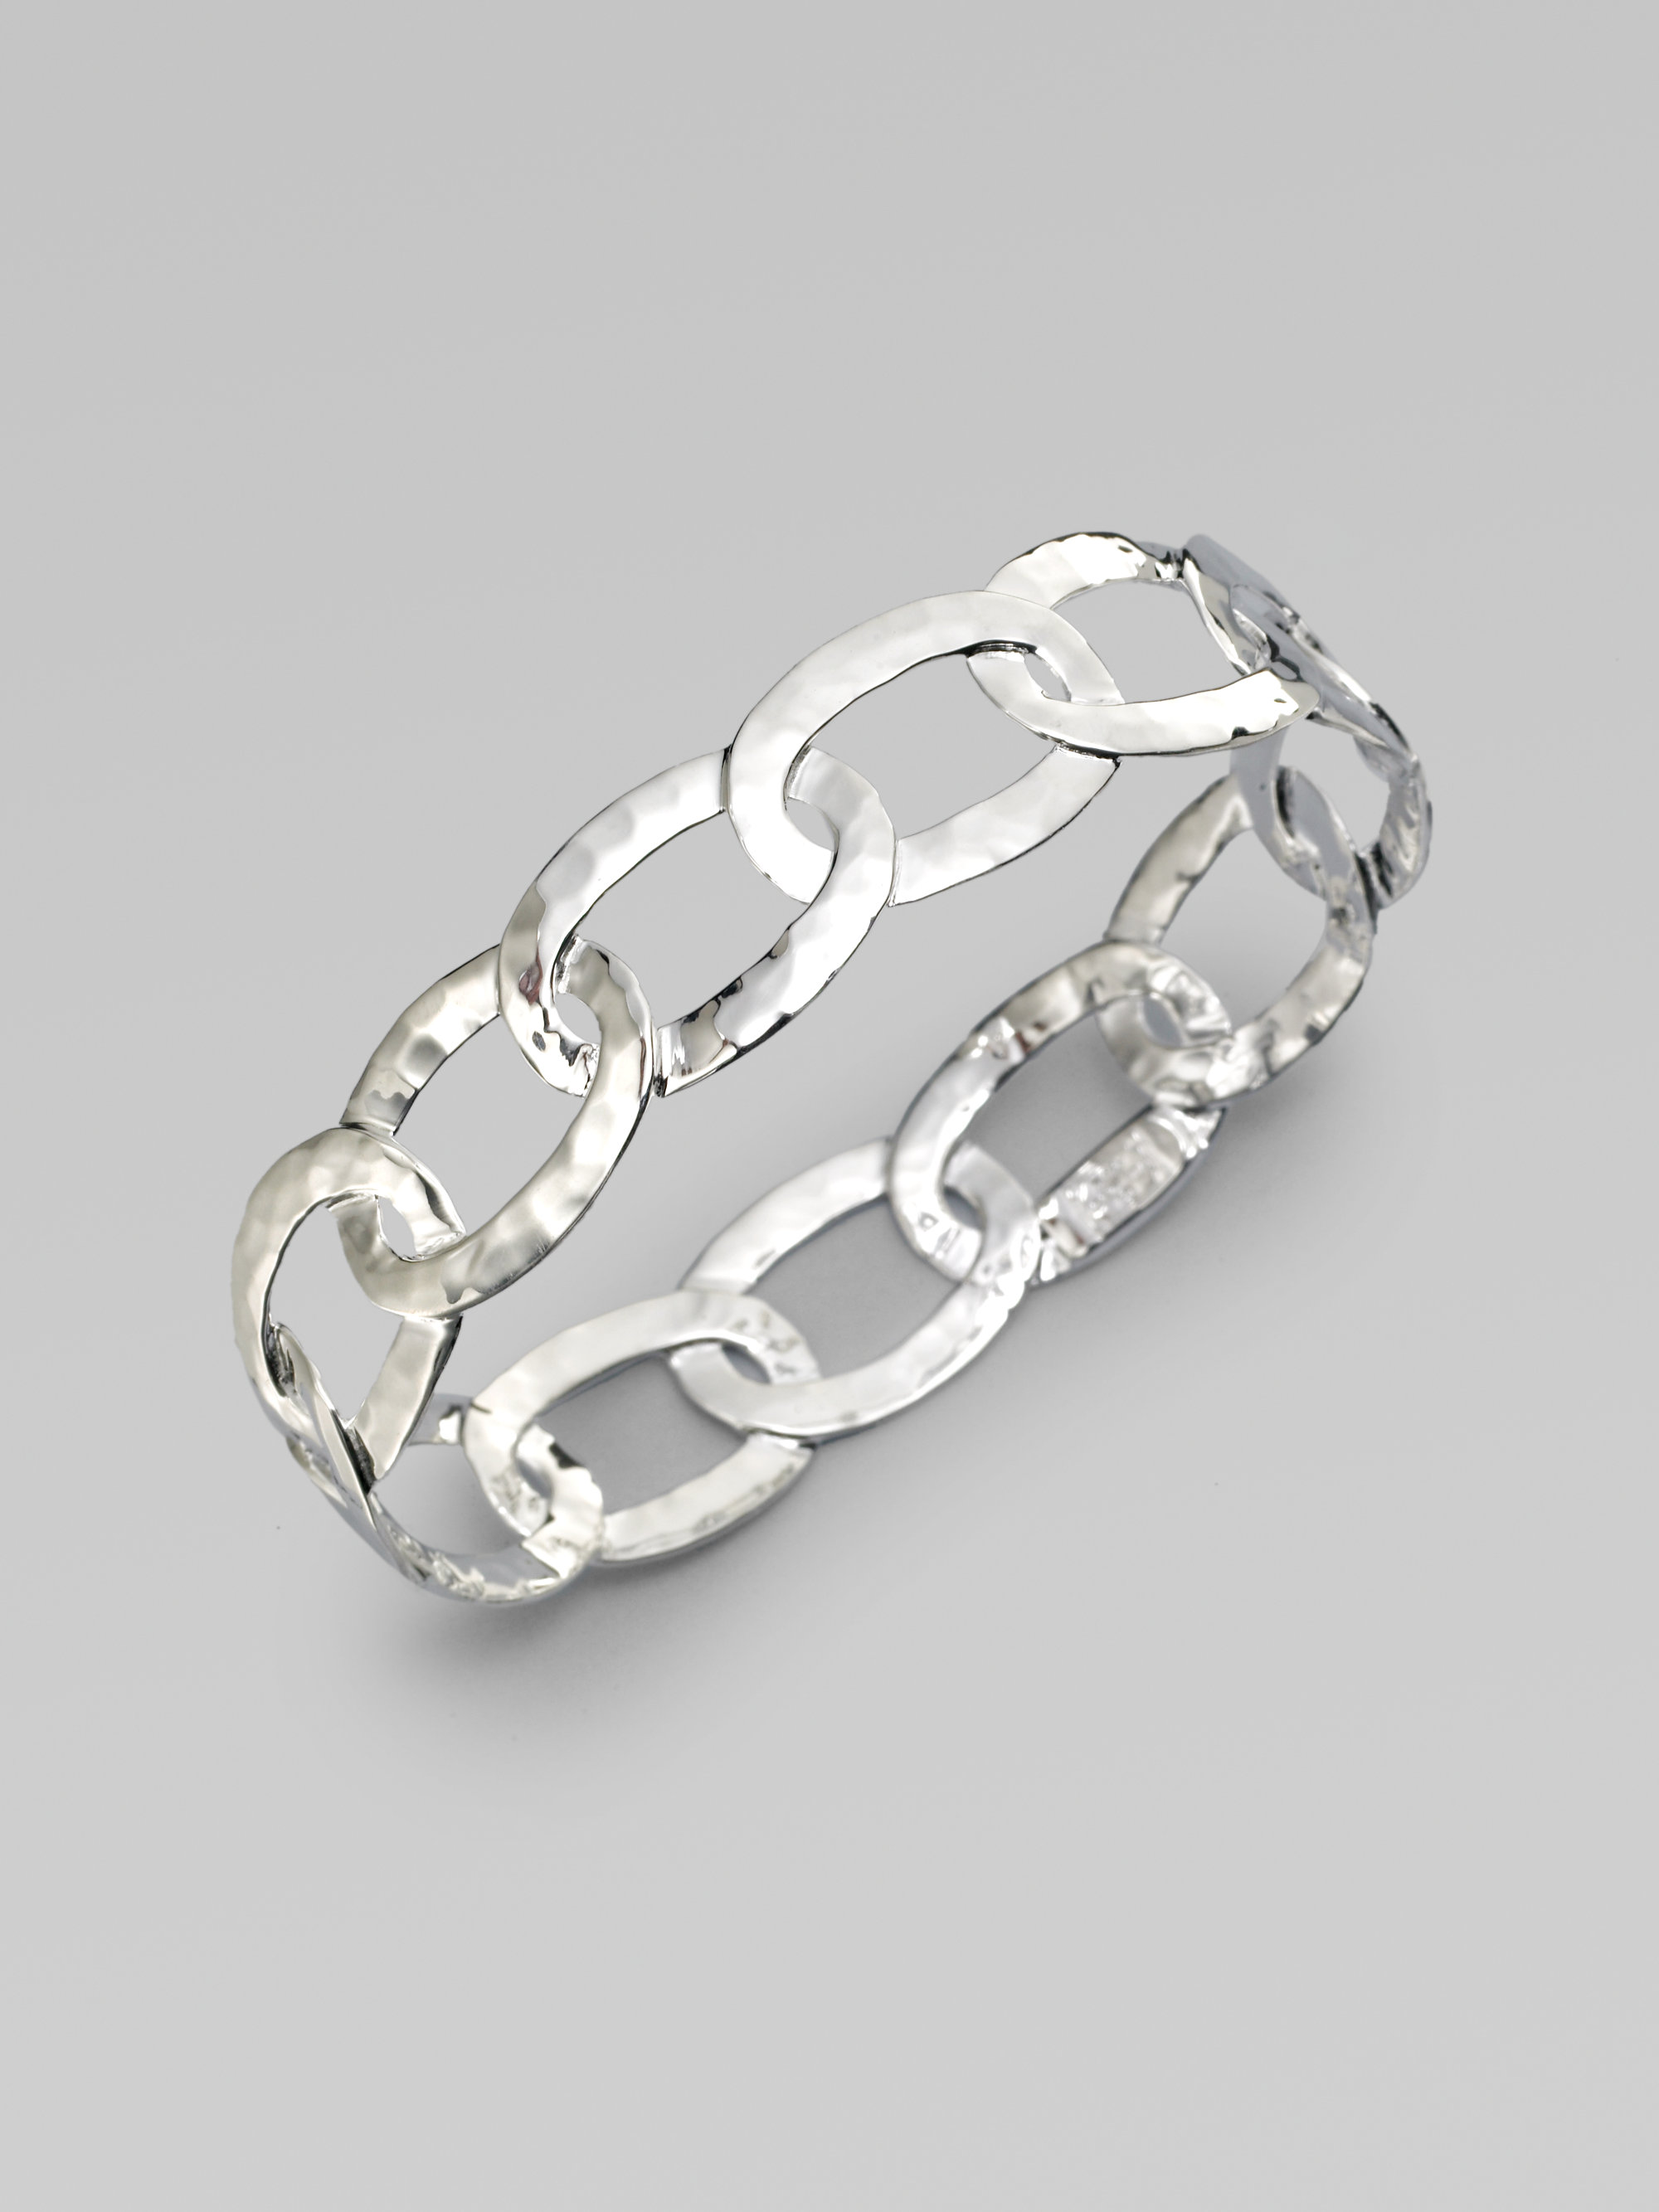 charm sterling product hoopbracelet bracelet hand designed srgb bangle linked jewelry silver